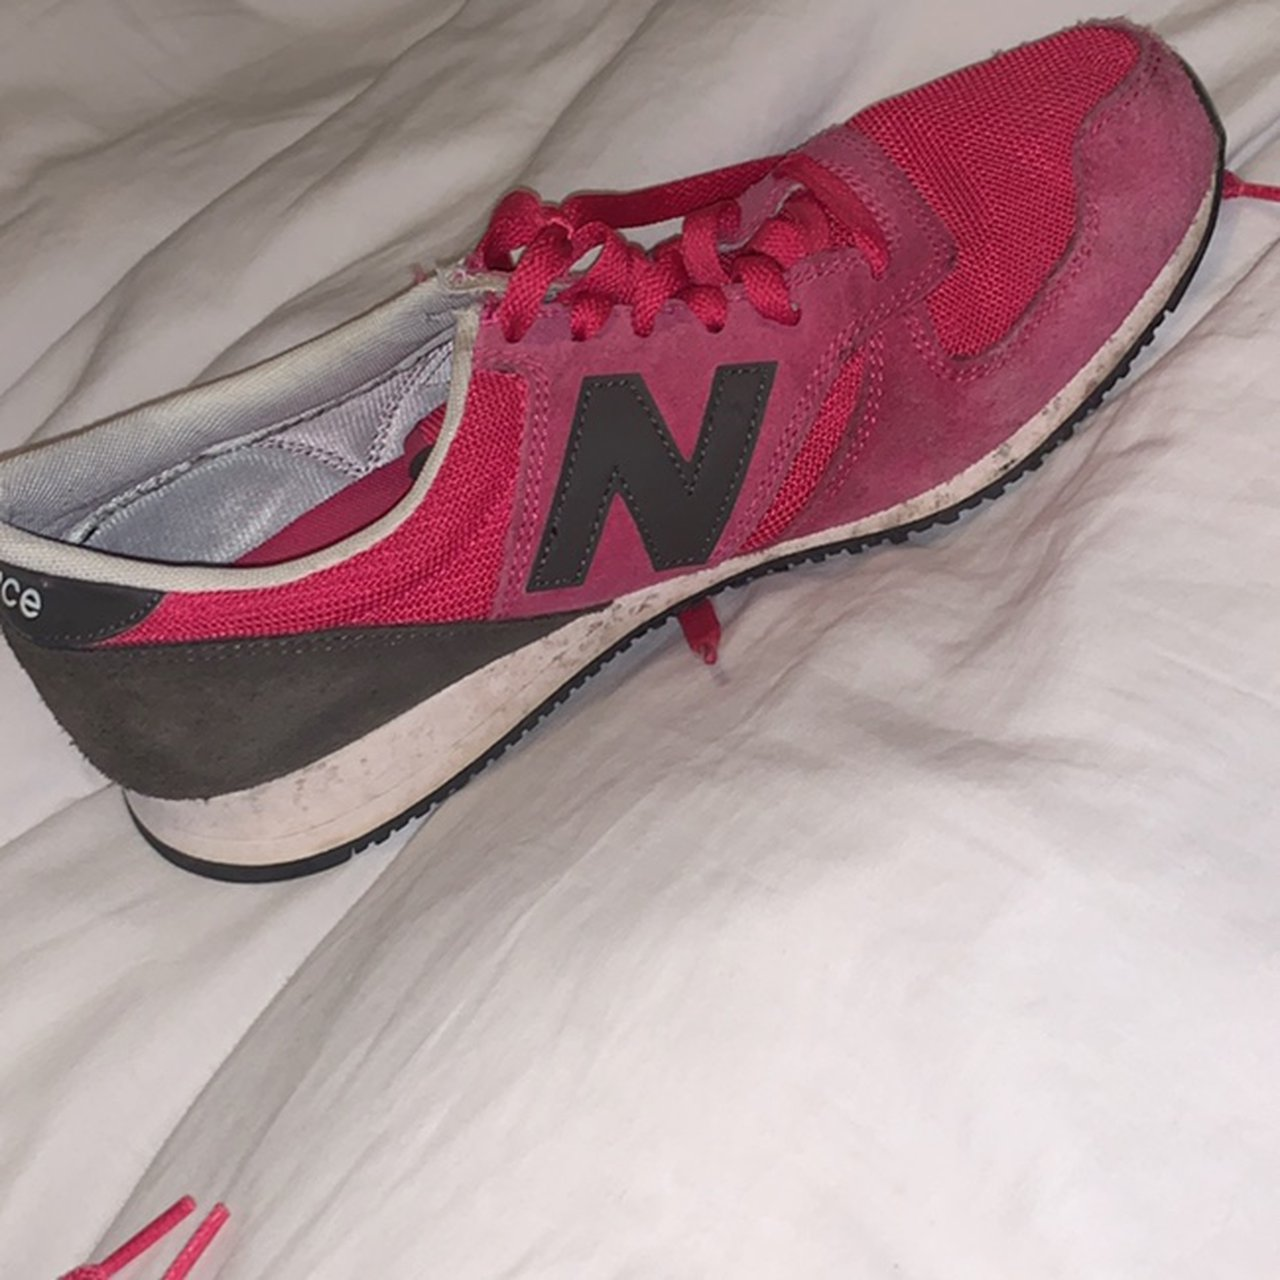 Trainers Rare Pink Colouway - Depop